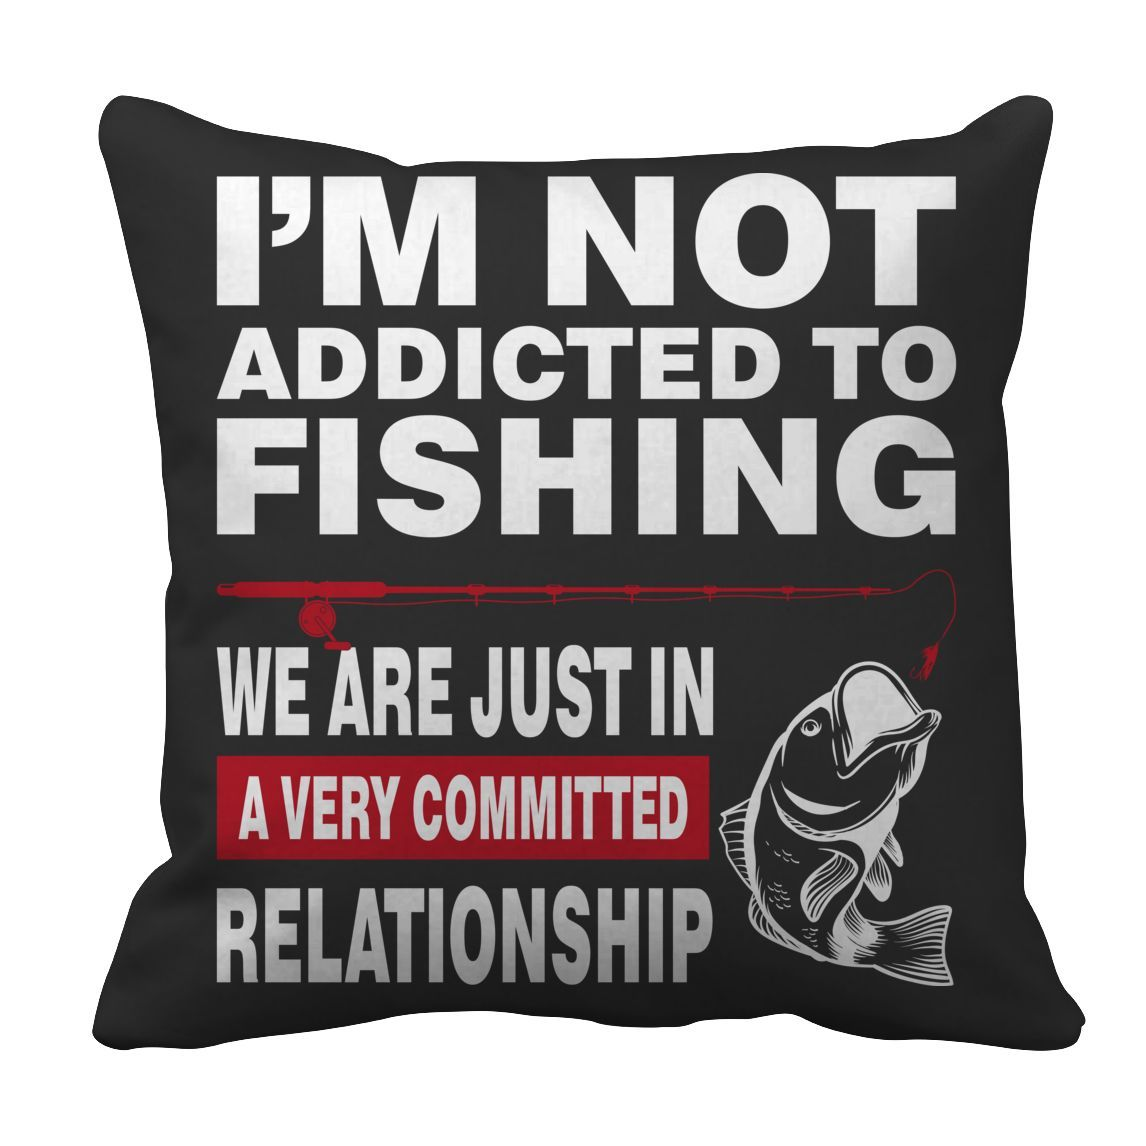 Funny Fishing Pillow Case I M Not Addicted To